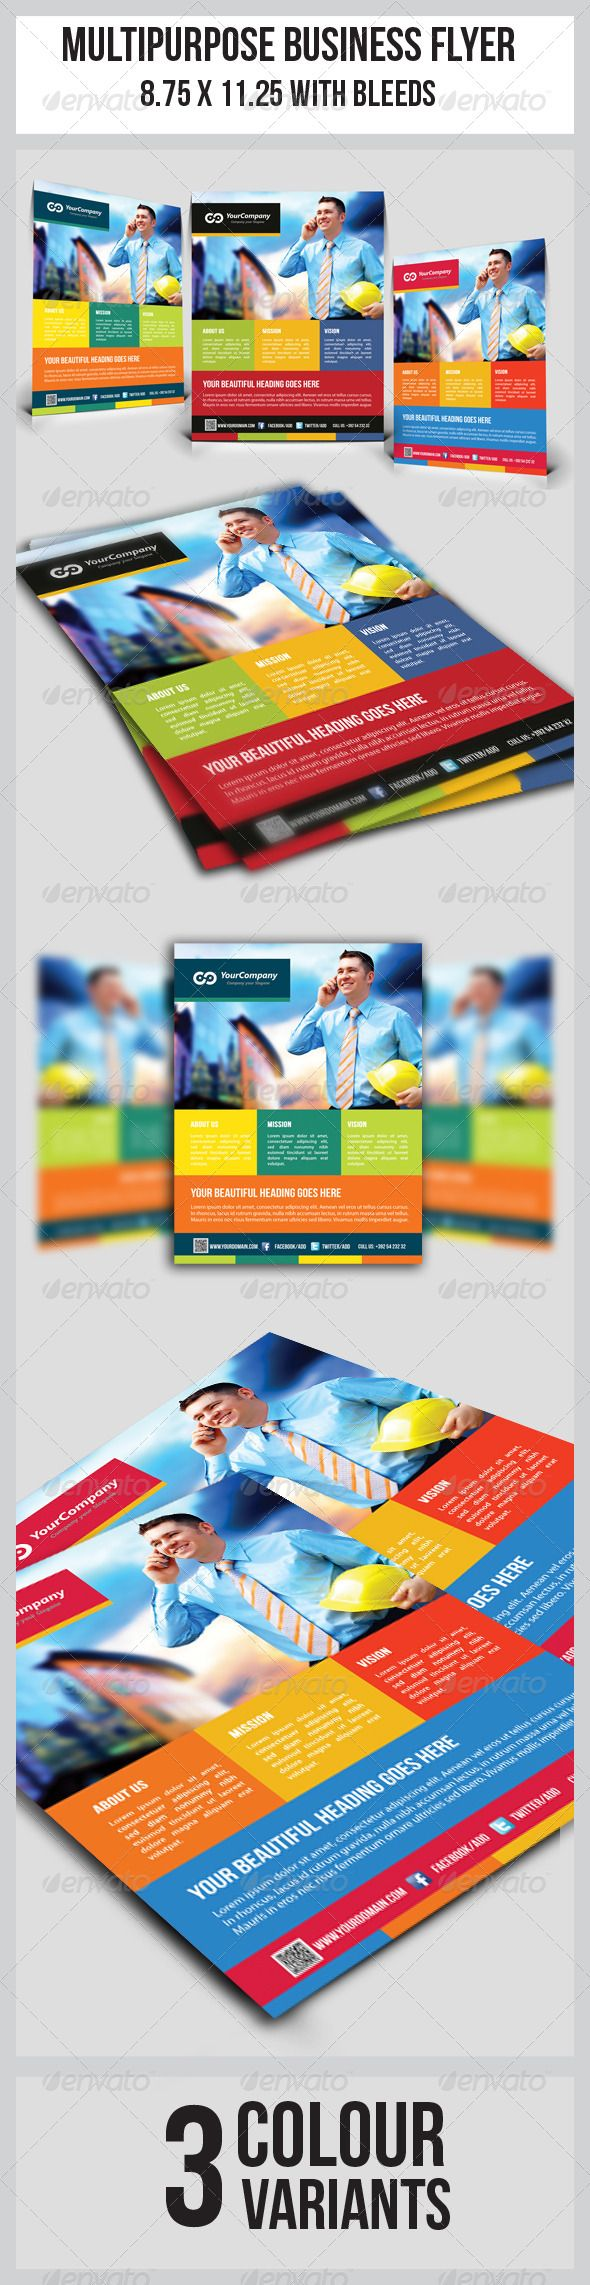 105 best Flyers and Posters images on Pinterest